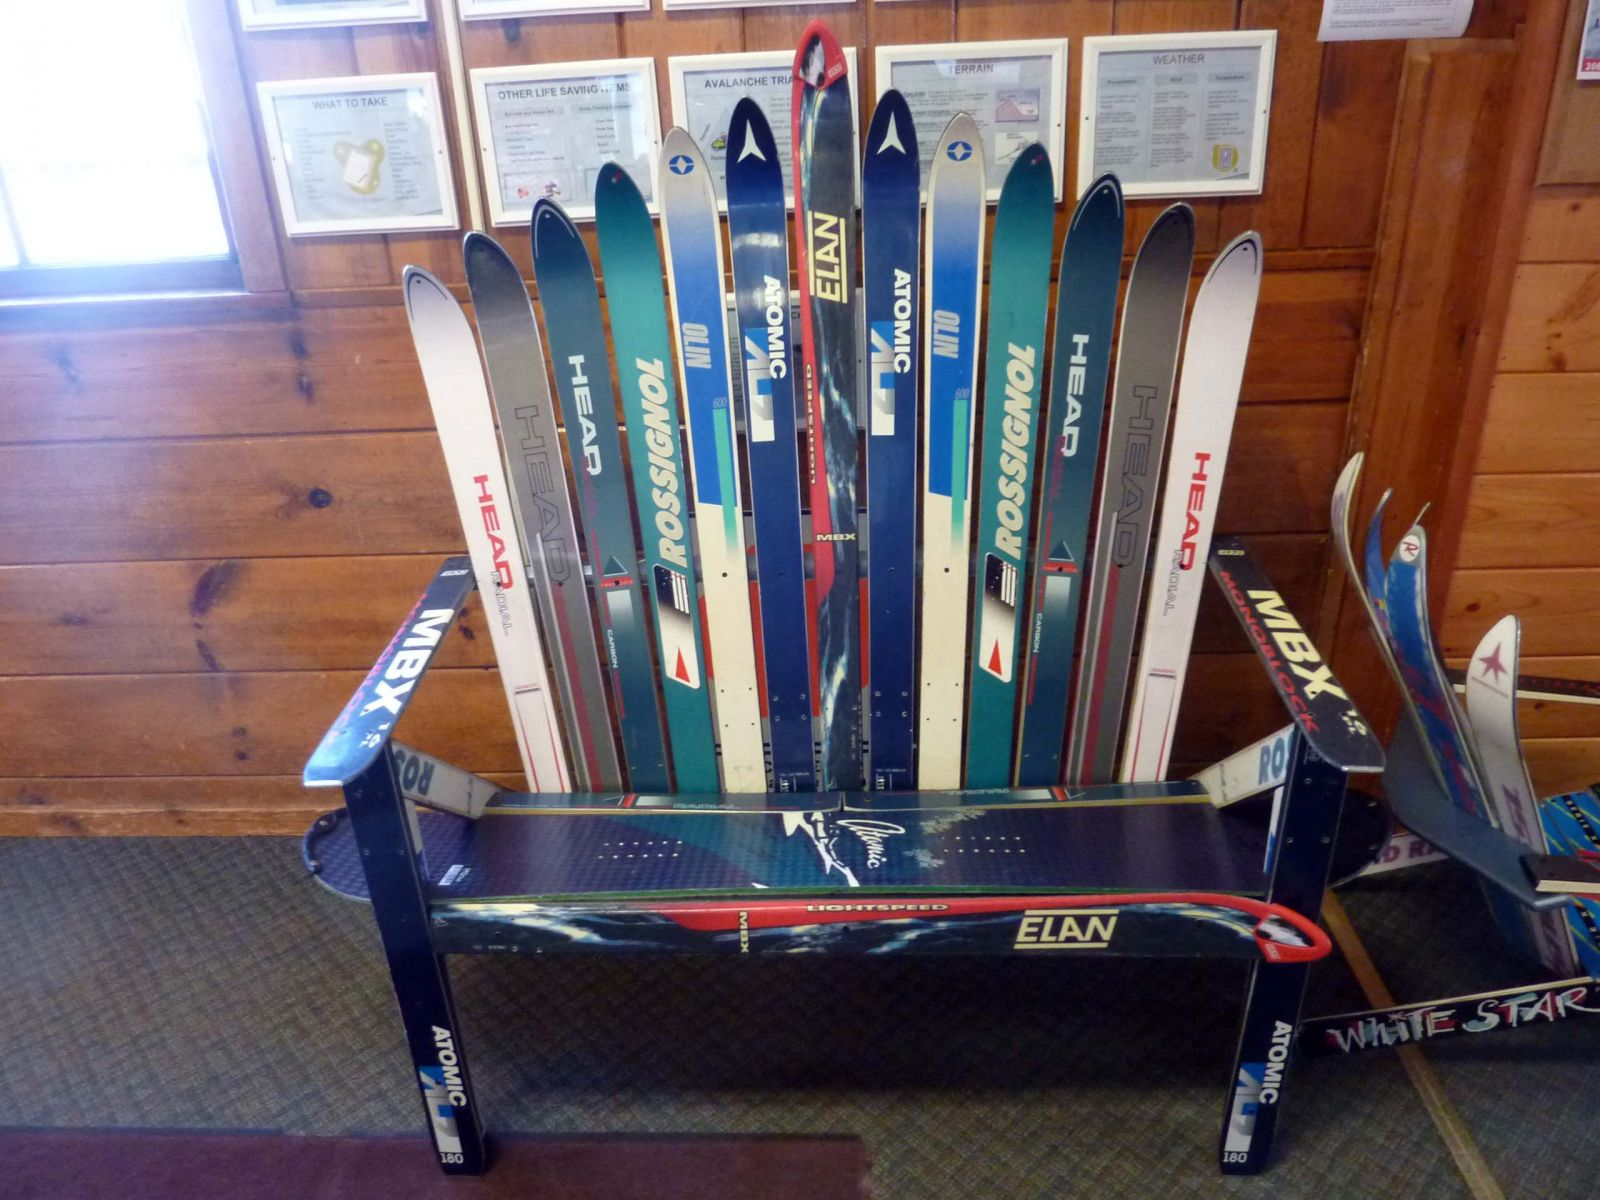 ski lift chairs for sale chairman 769 lookout pass gt prime timer 39s raffle 2015